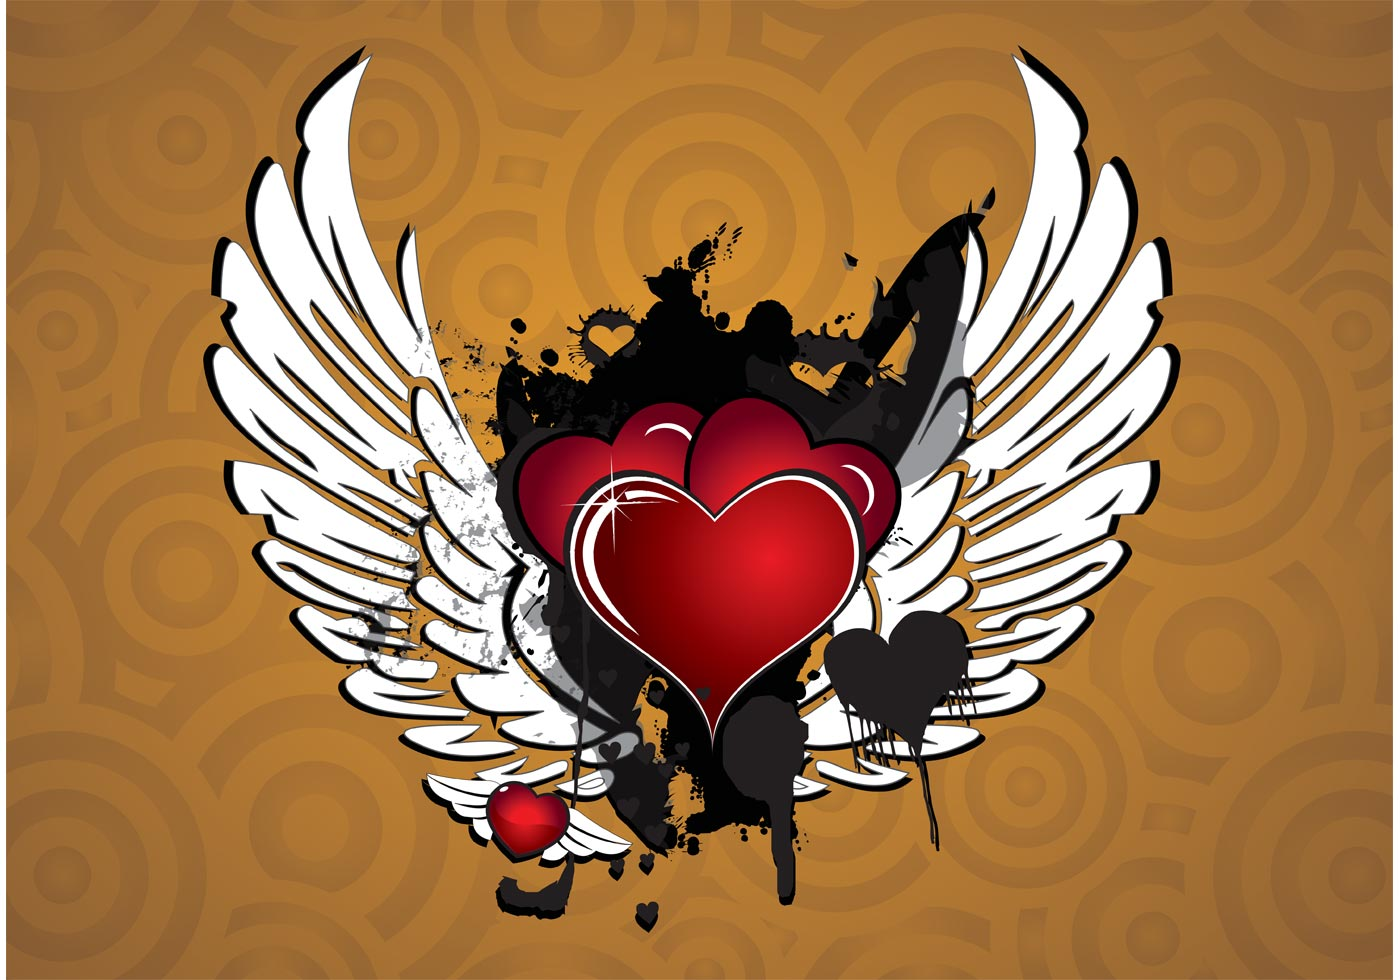 winged heart vector download free vector art stock graphics images. Black Bedroom Furniture Sets. Home Design Ideas